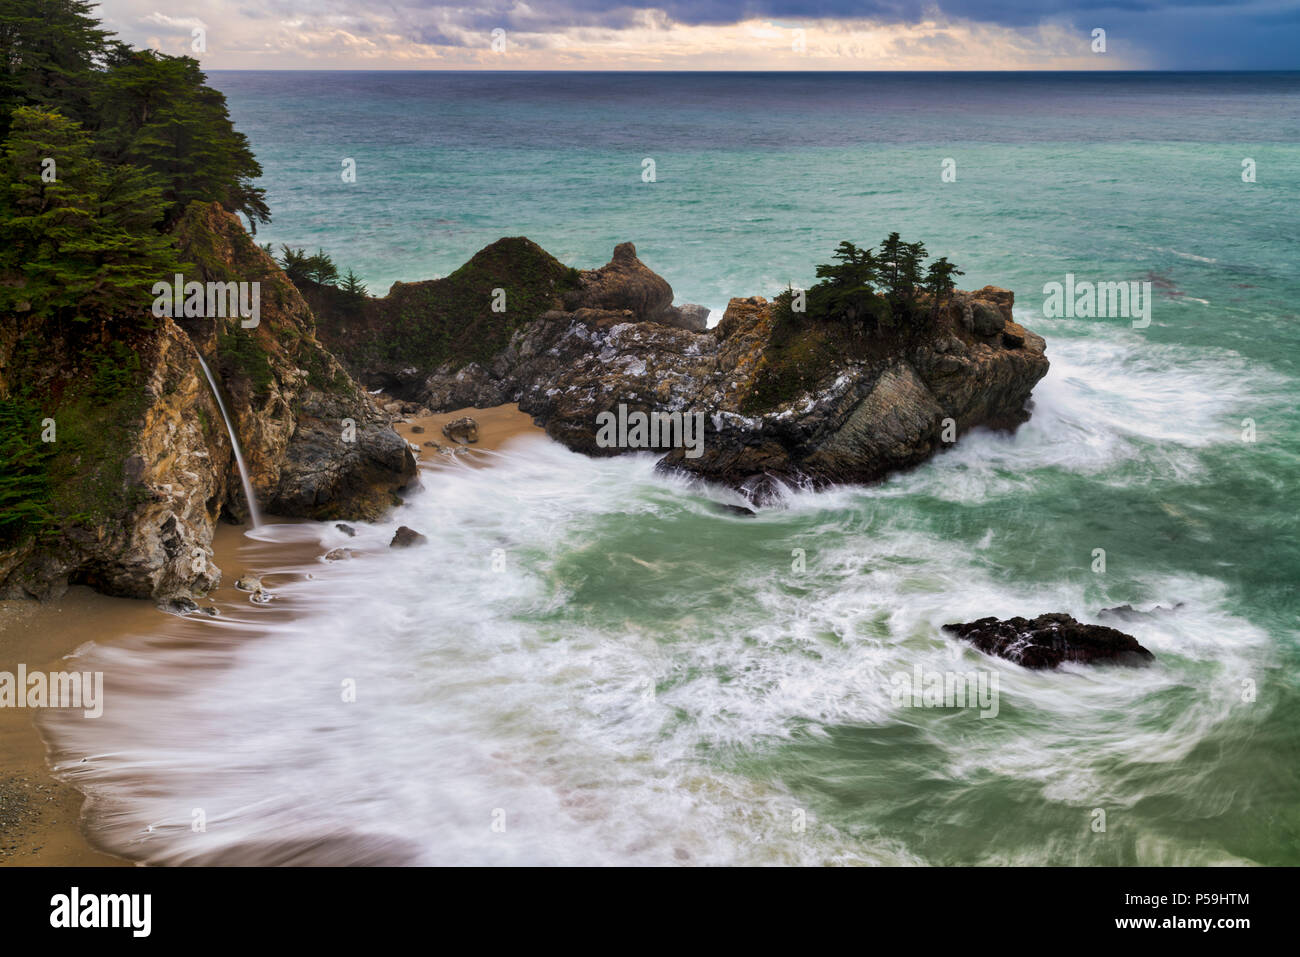 McWay Falls Photo Stock